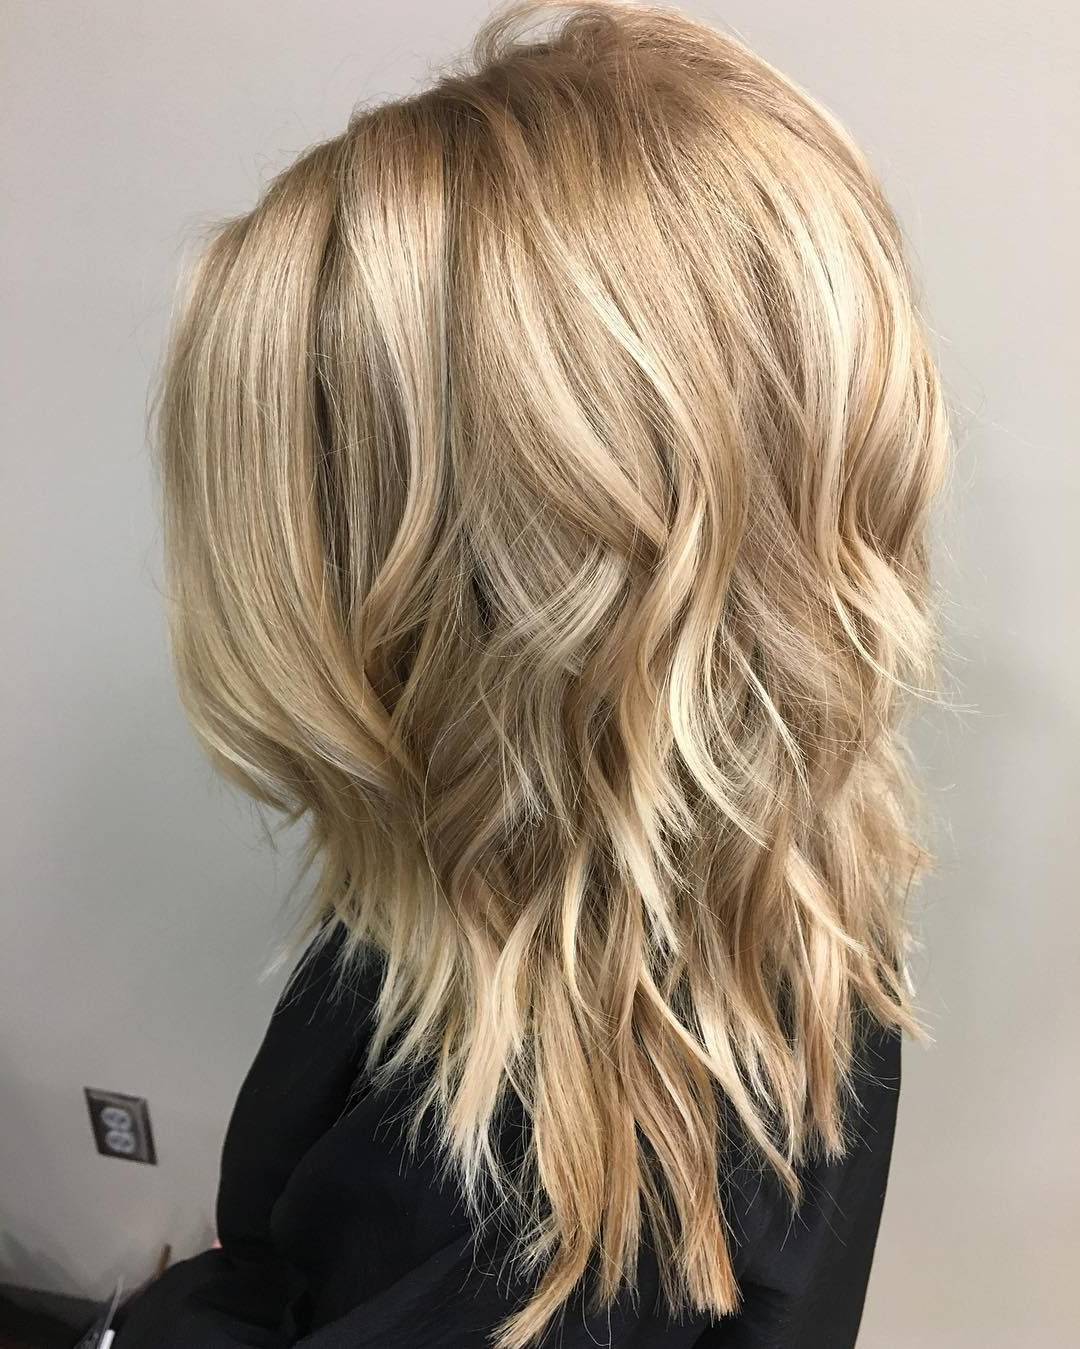 Most Popular Medium Medium Hairstyles With Layers Inside Medium Hairstyle : Hairstyles For Medium Layered Hair Easy Cut Short (View 14 of 20)